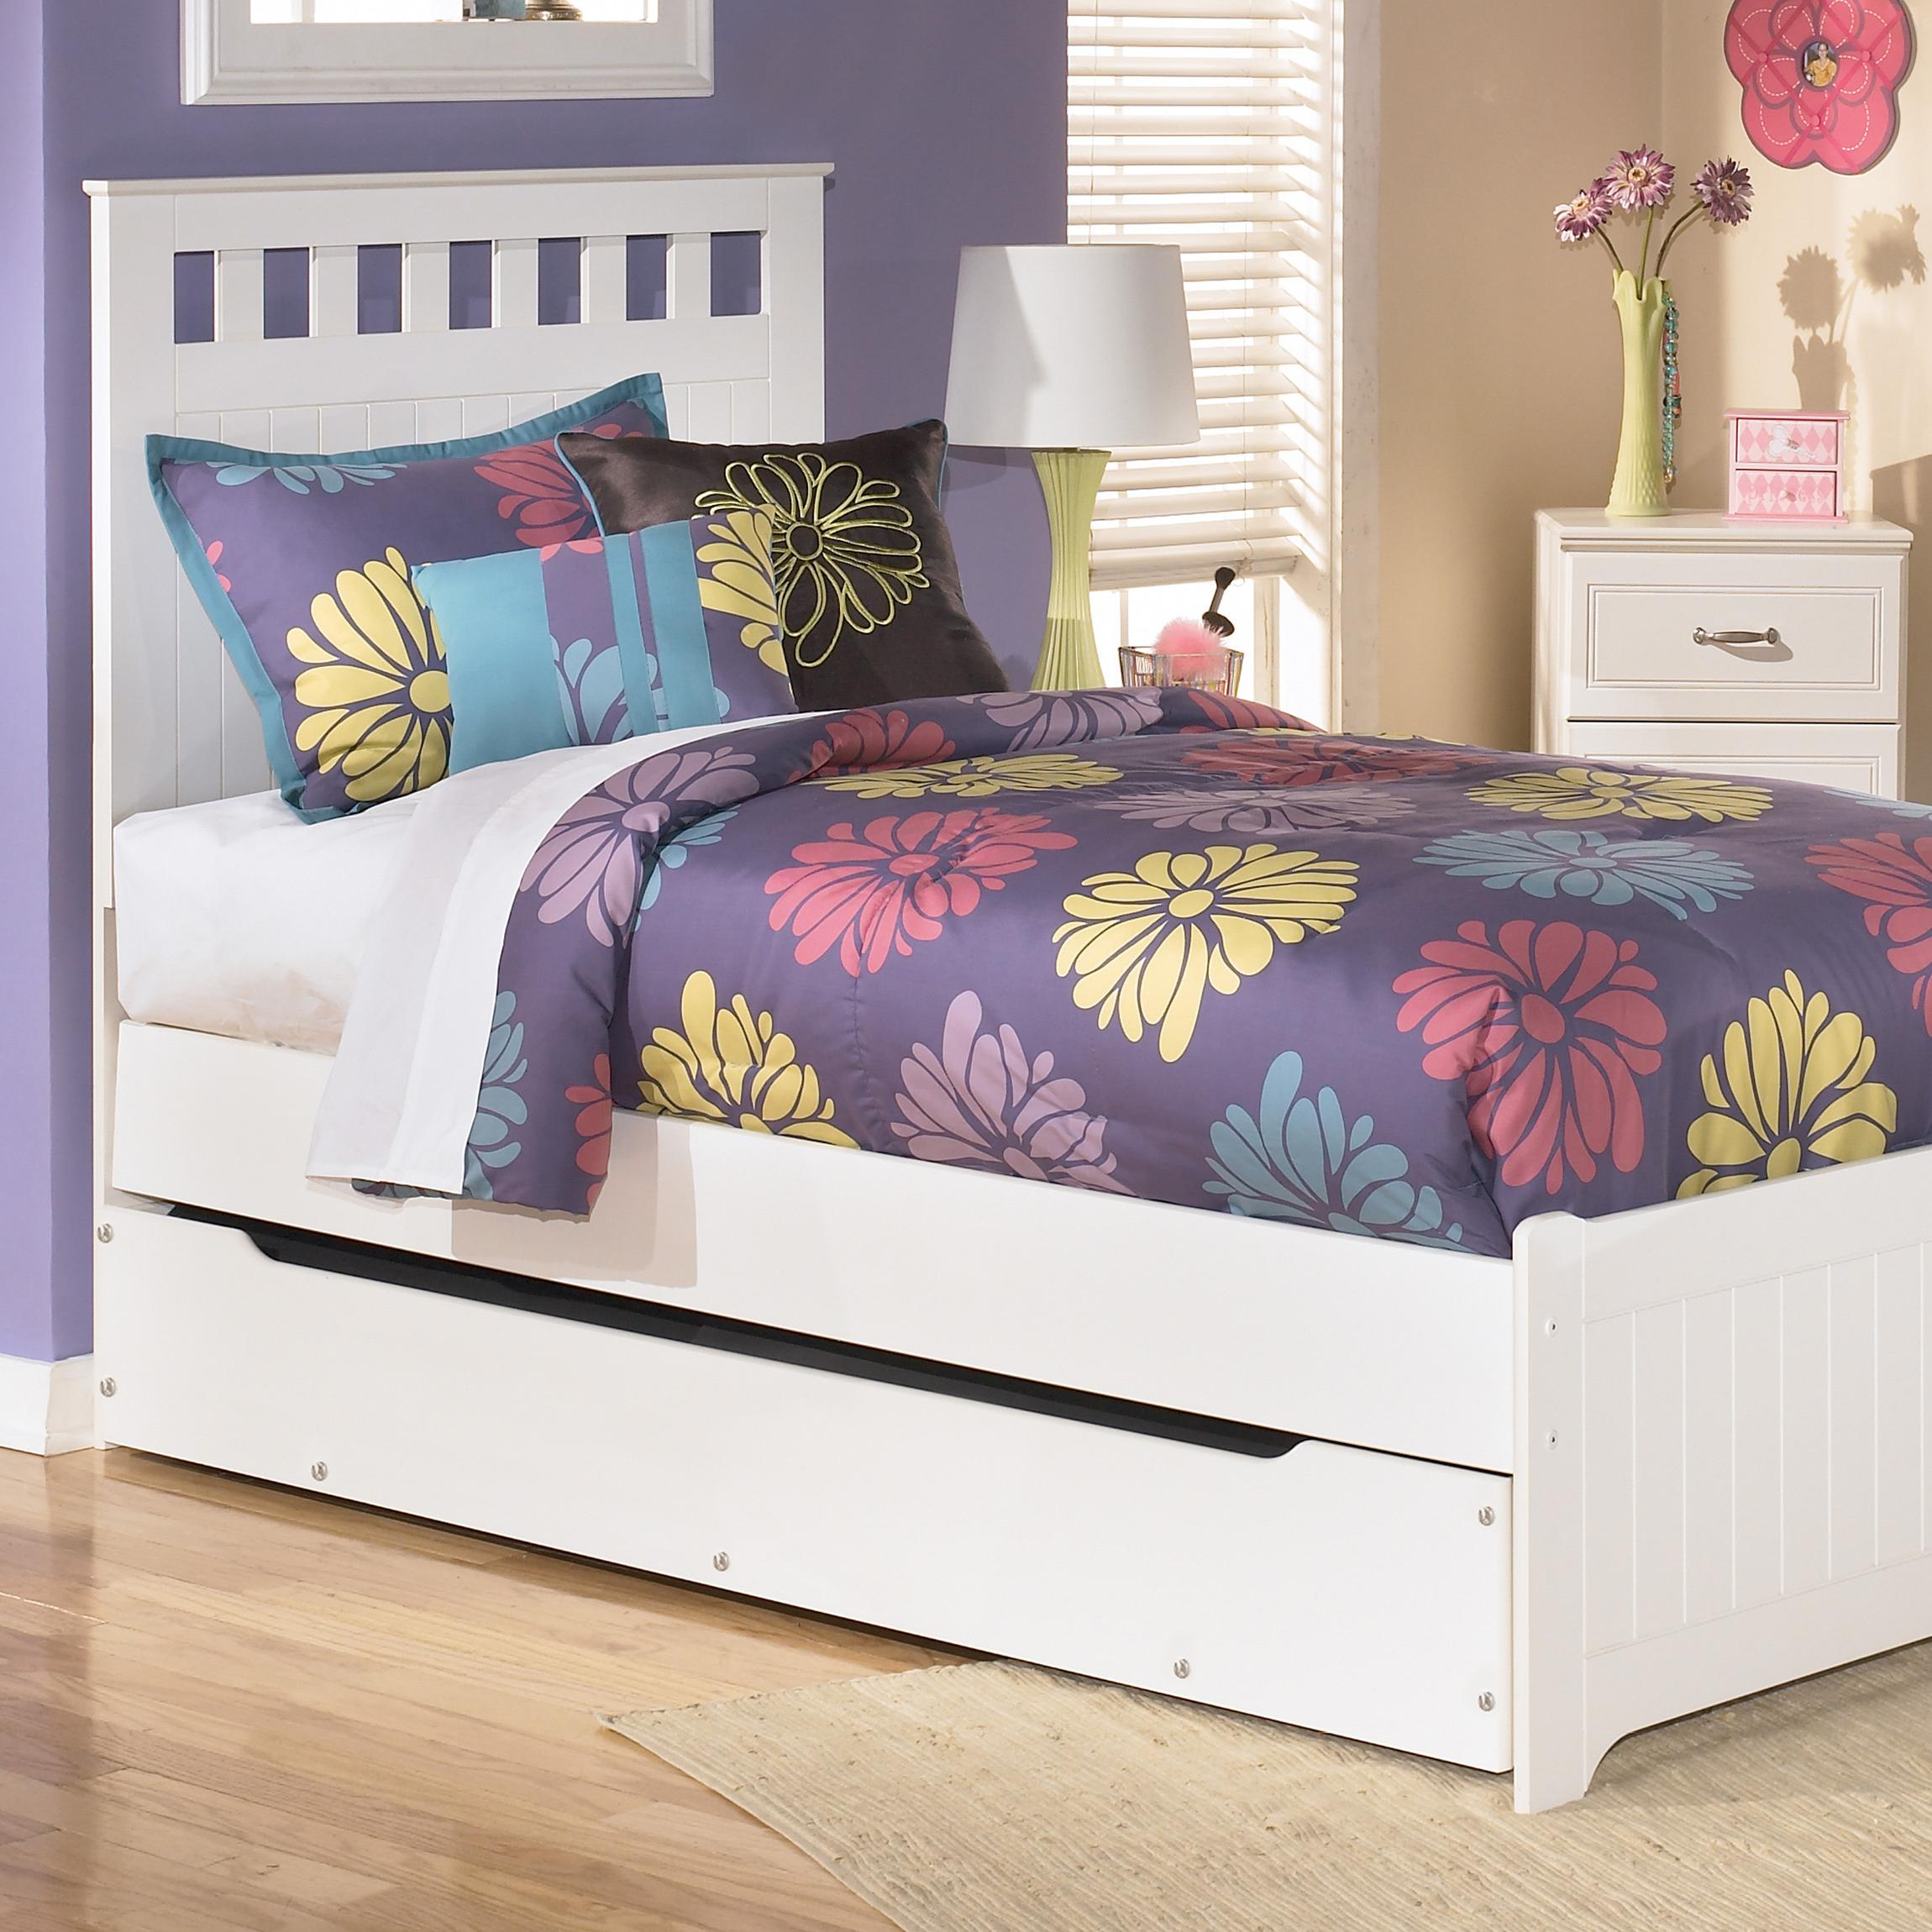 Signature Design by Ashley Lulu Trundle Under Bed Storage - Item Number: B102-60